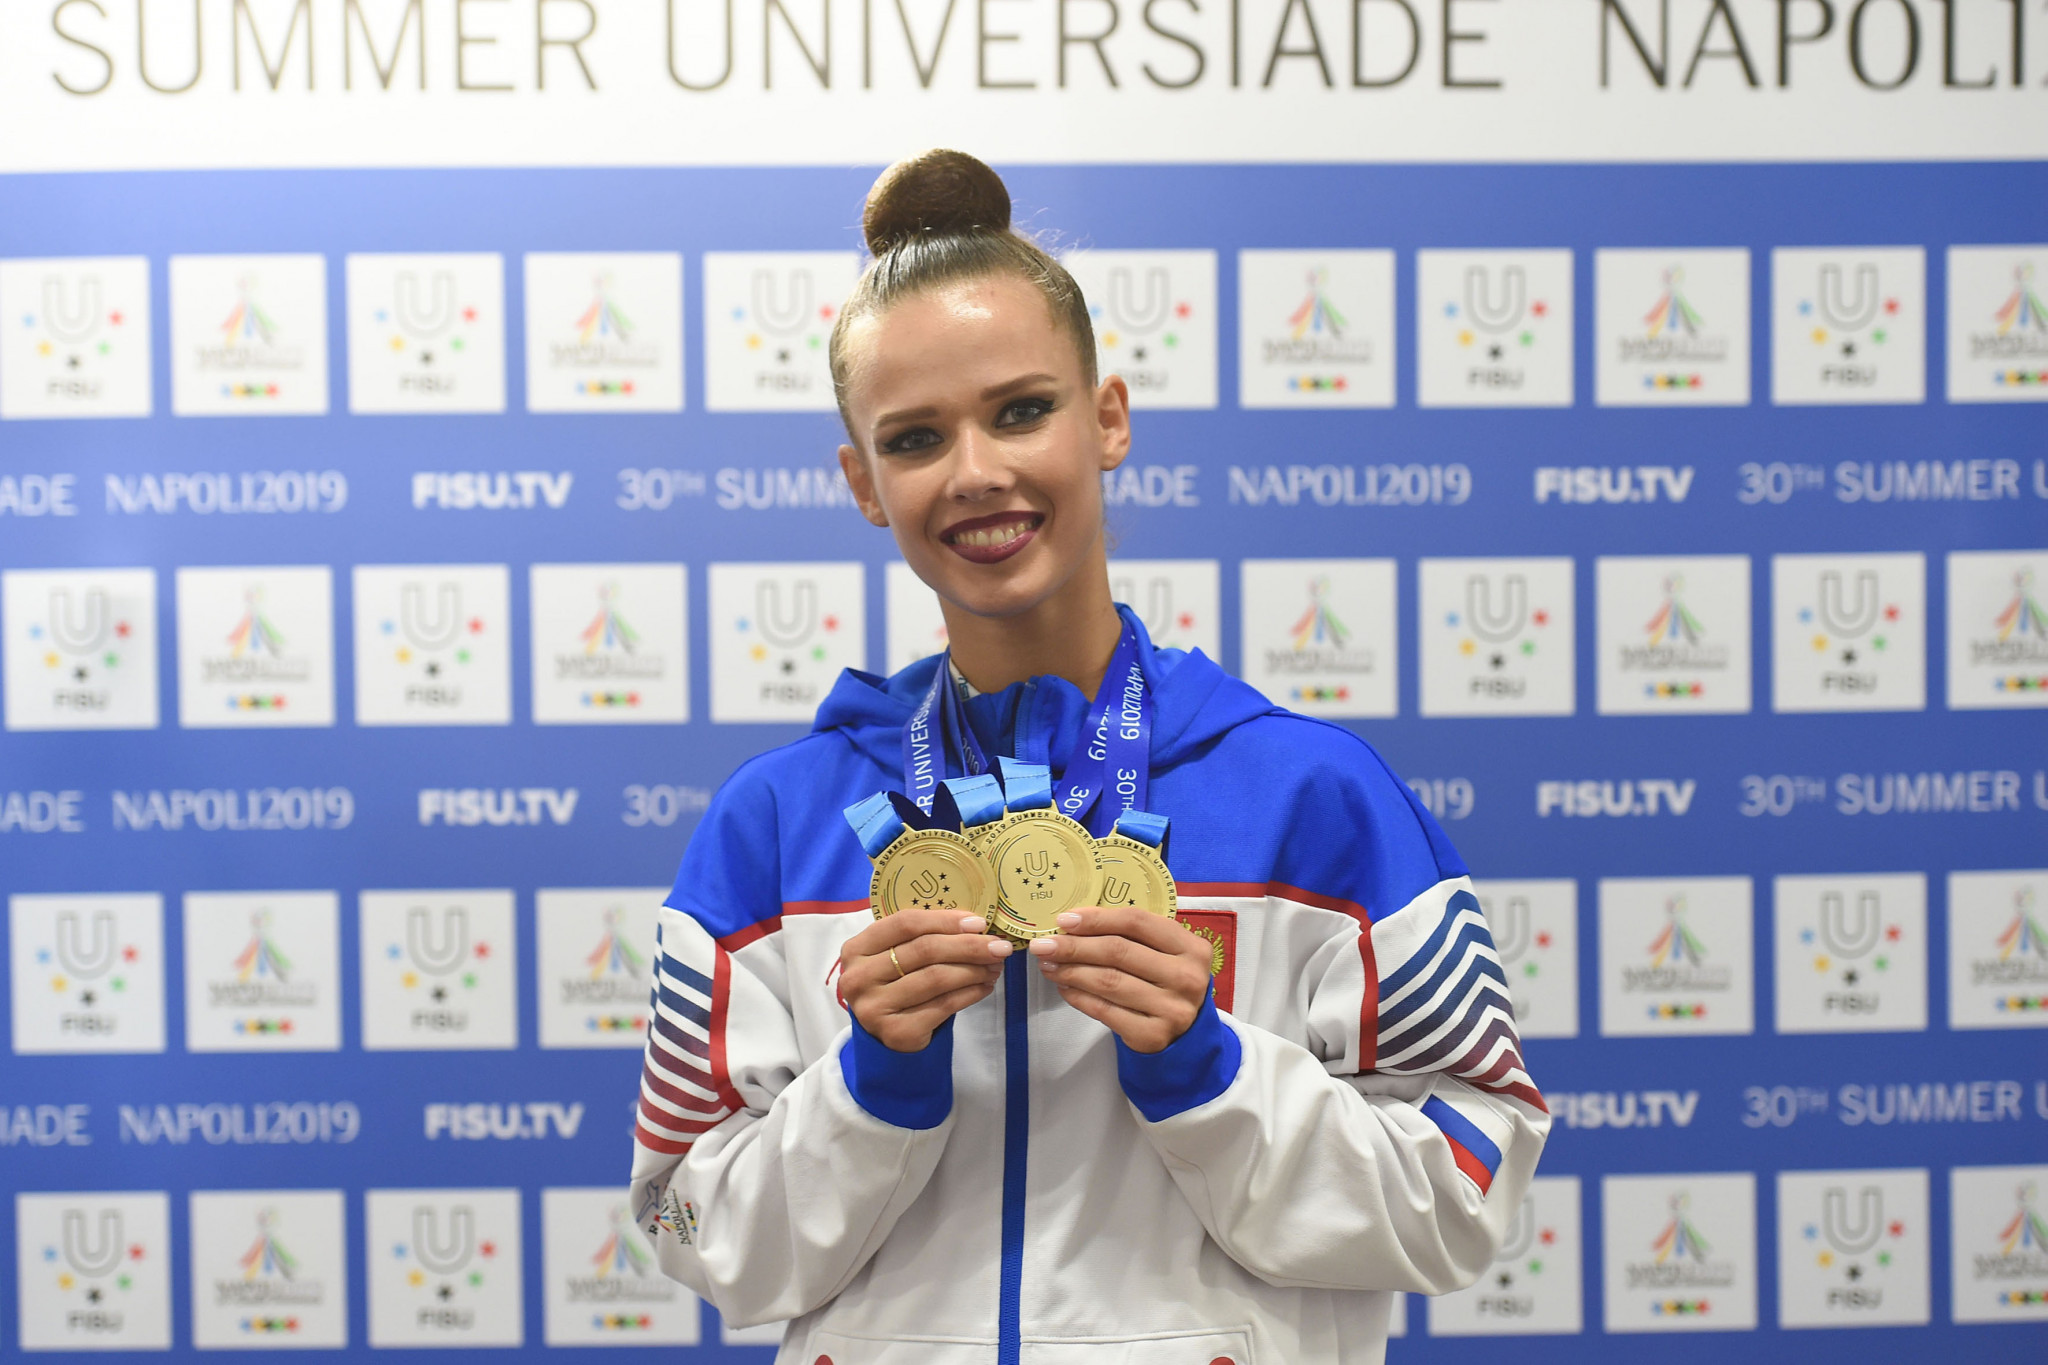 Selezneva collects three rhythmic gymnastics gold medals on penultimate day of Naples 2019